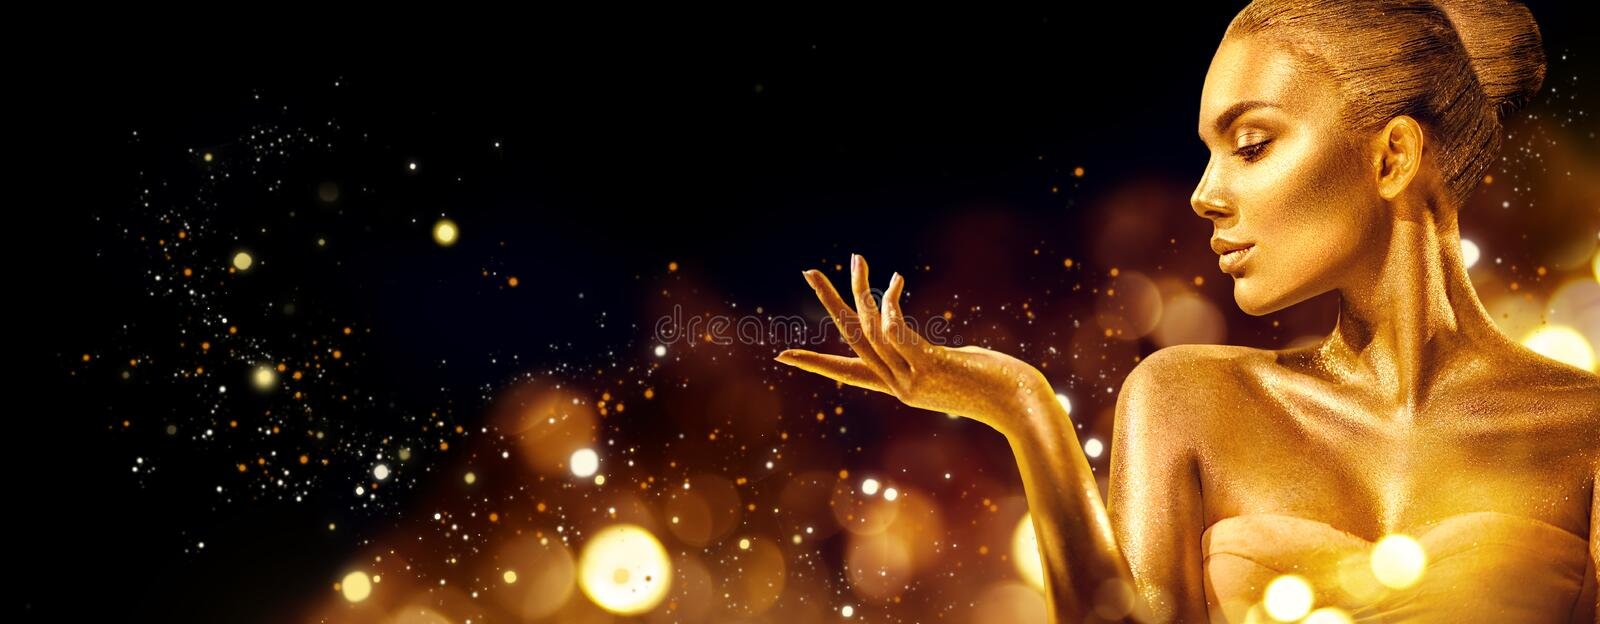 Gold Christmas woman. Beauty fashion model girl with golden makeup, hair and jewellery pointing hand on black royalty free stock photos